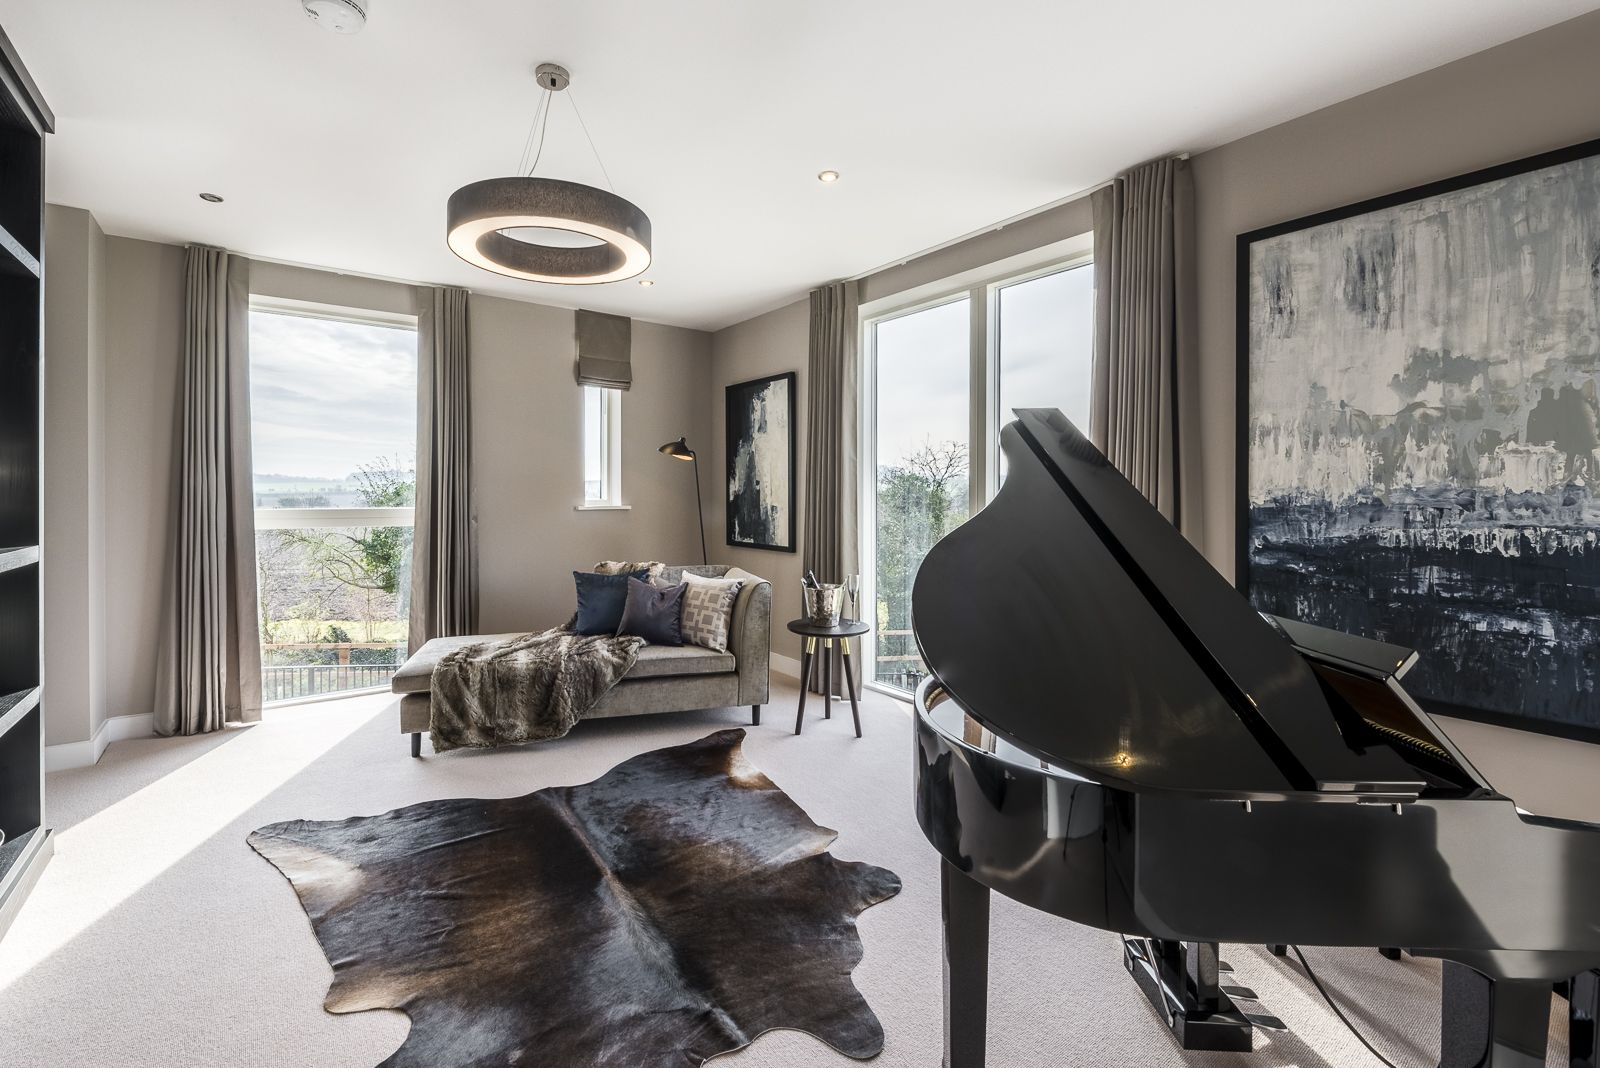 Warm and inviting chill out area with luxurious chaise longue draped with  faux fur throws, and stunning grand piano. Created by Artspace Interior  Design Ltd